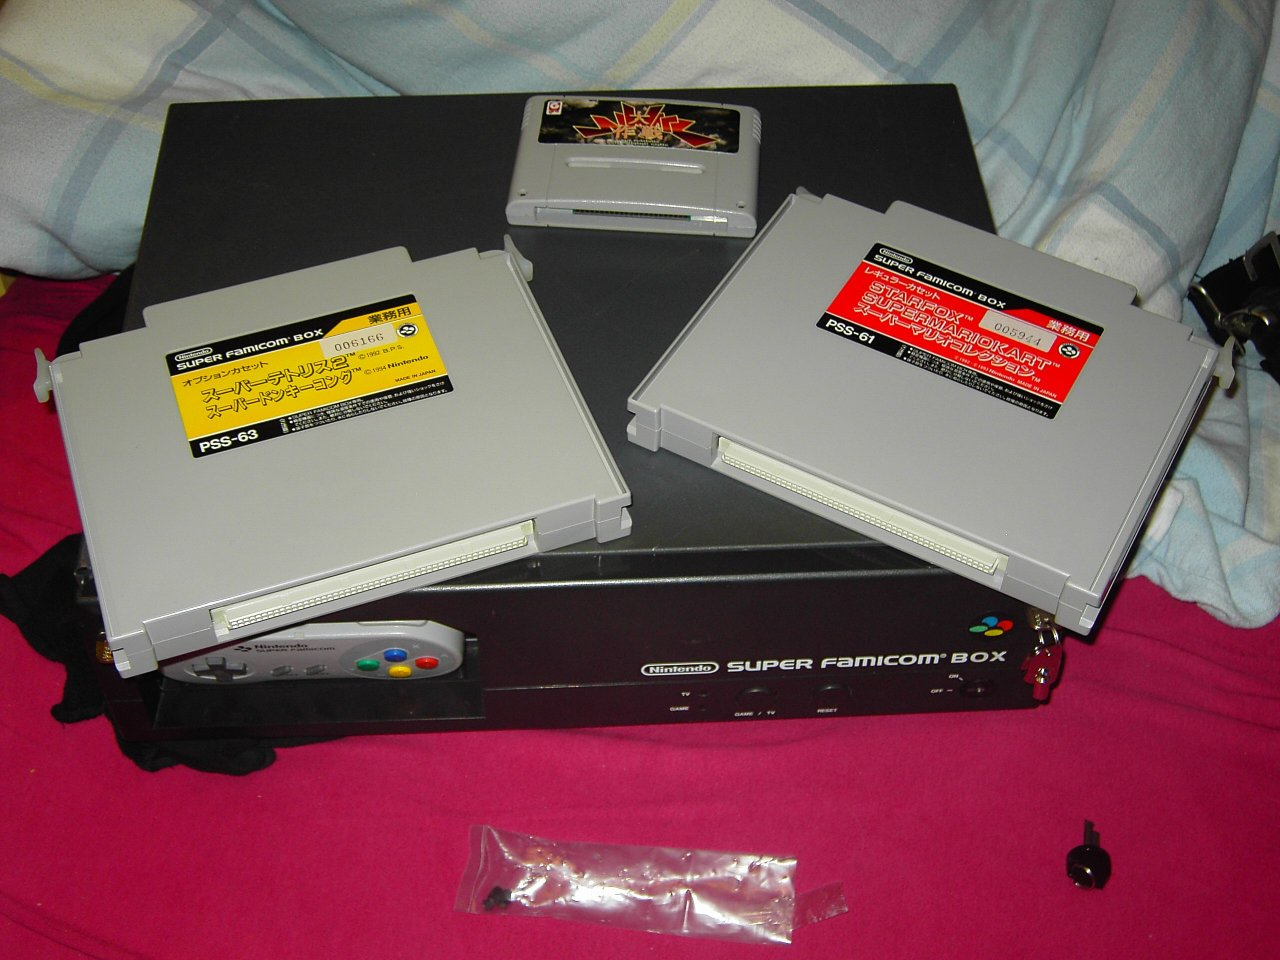 Super Famicom Box with two special carts